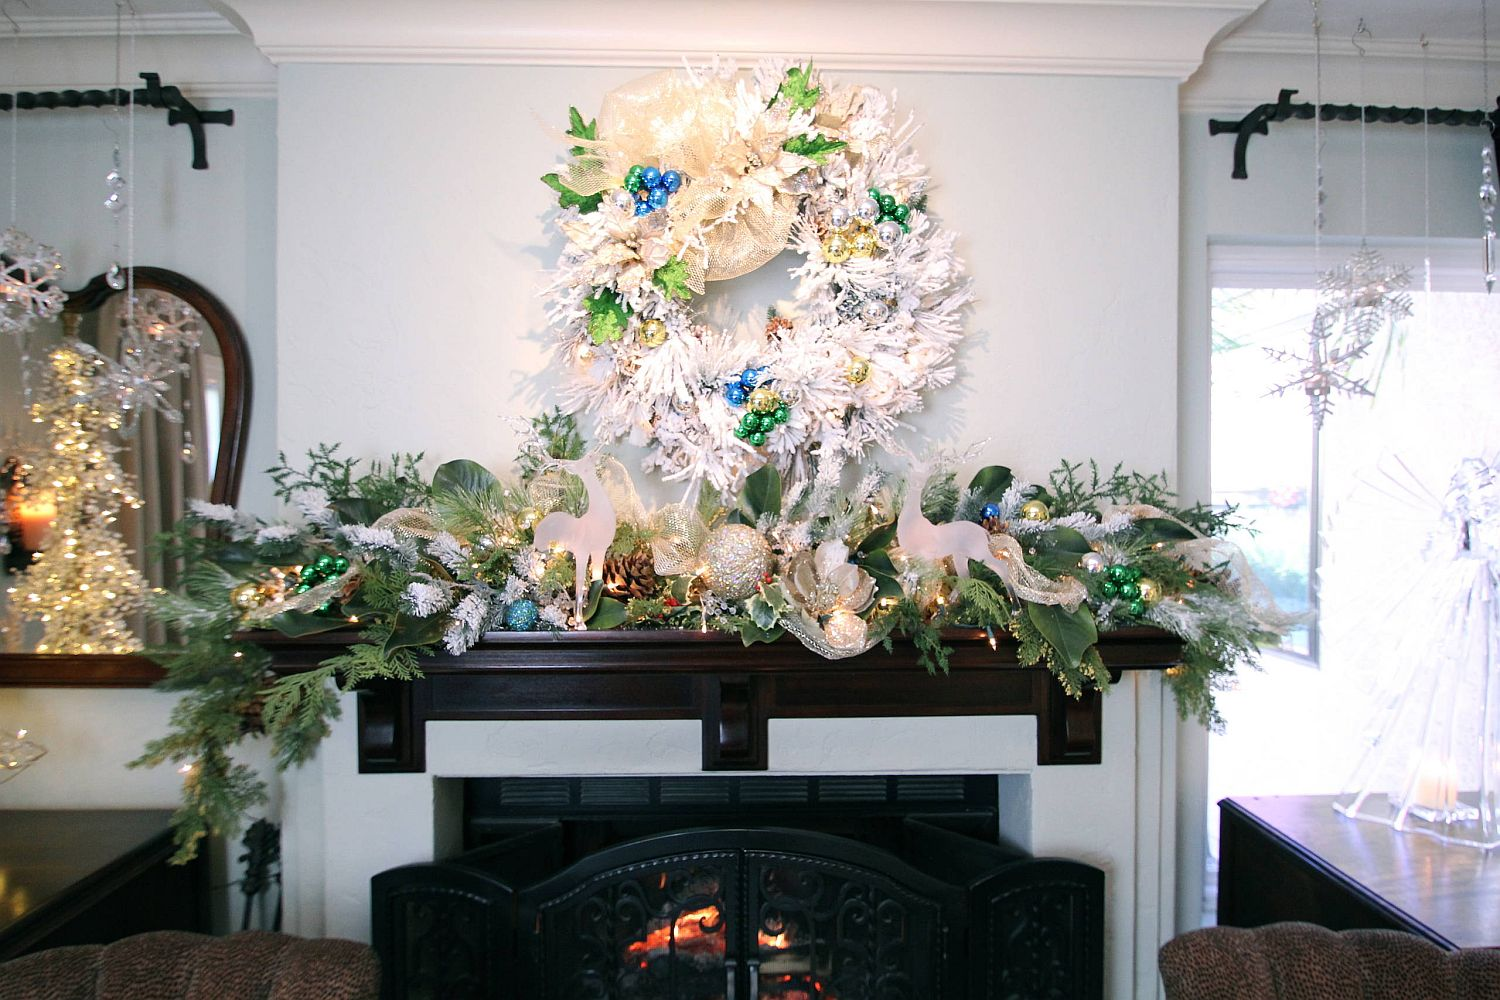 Decorating the dining room fireplace mantle for the Holidays